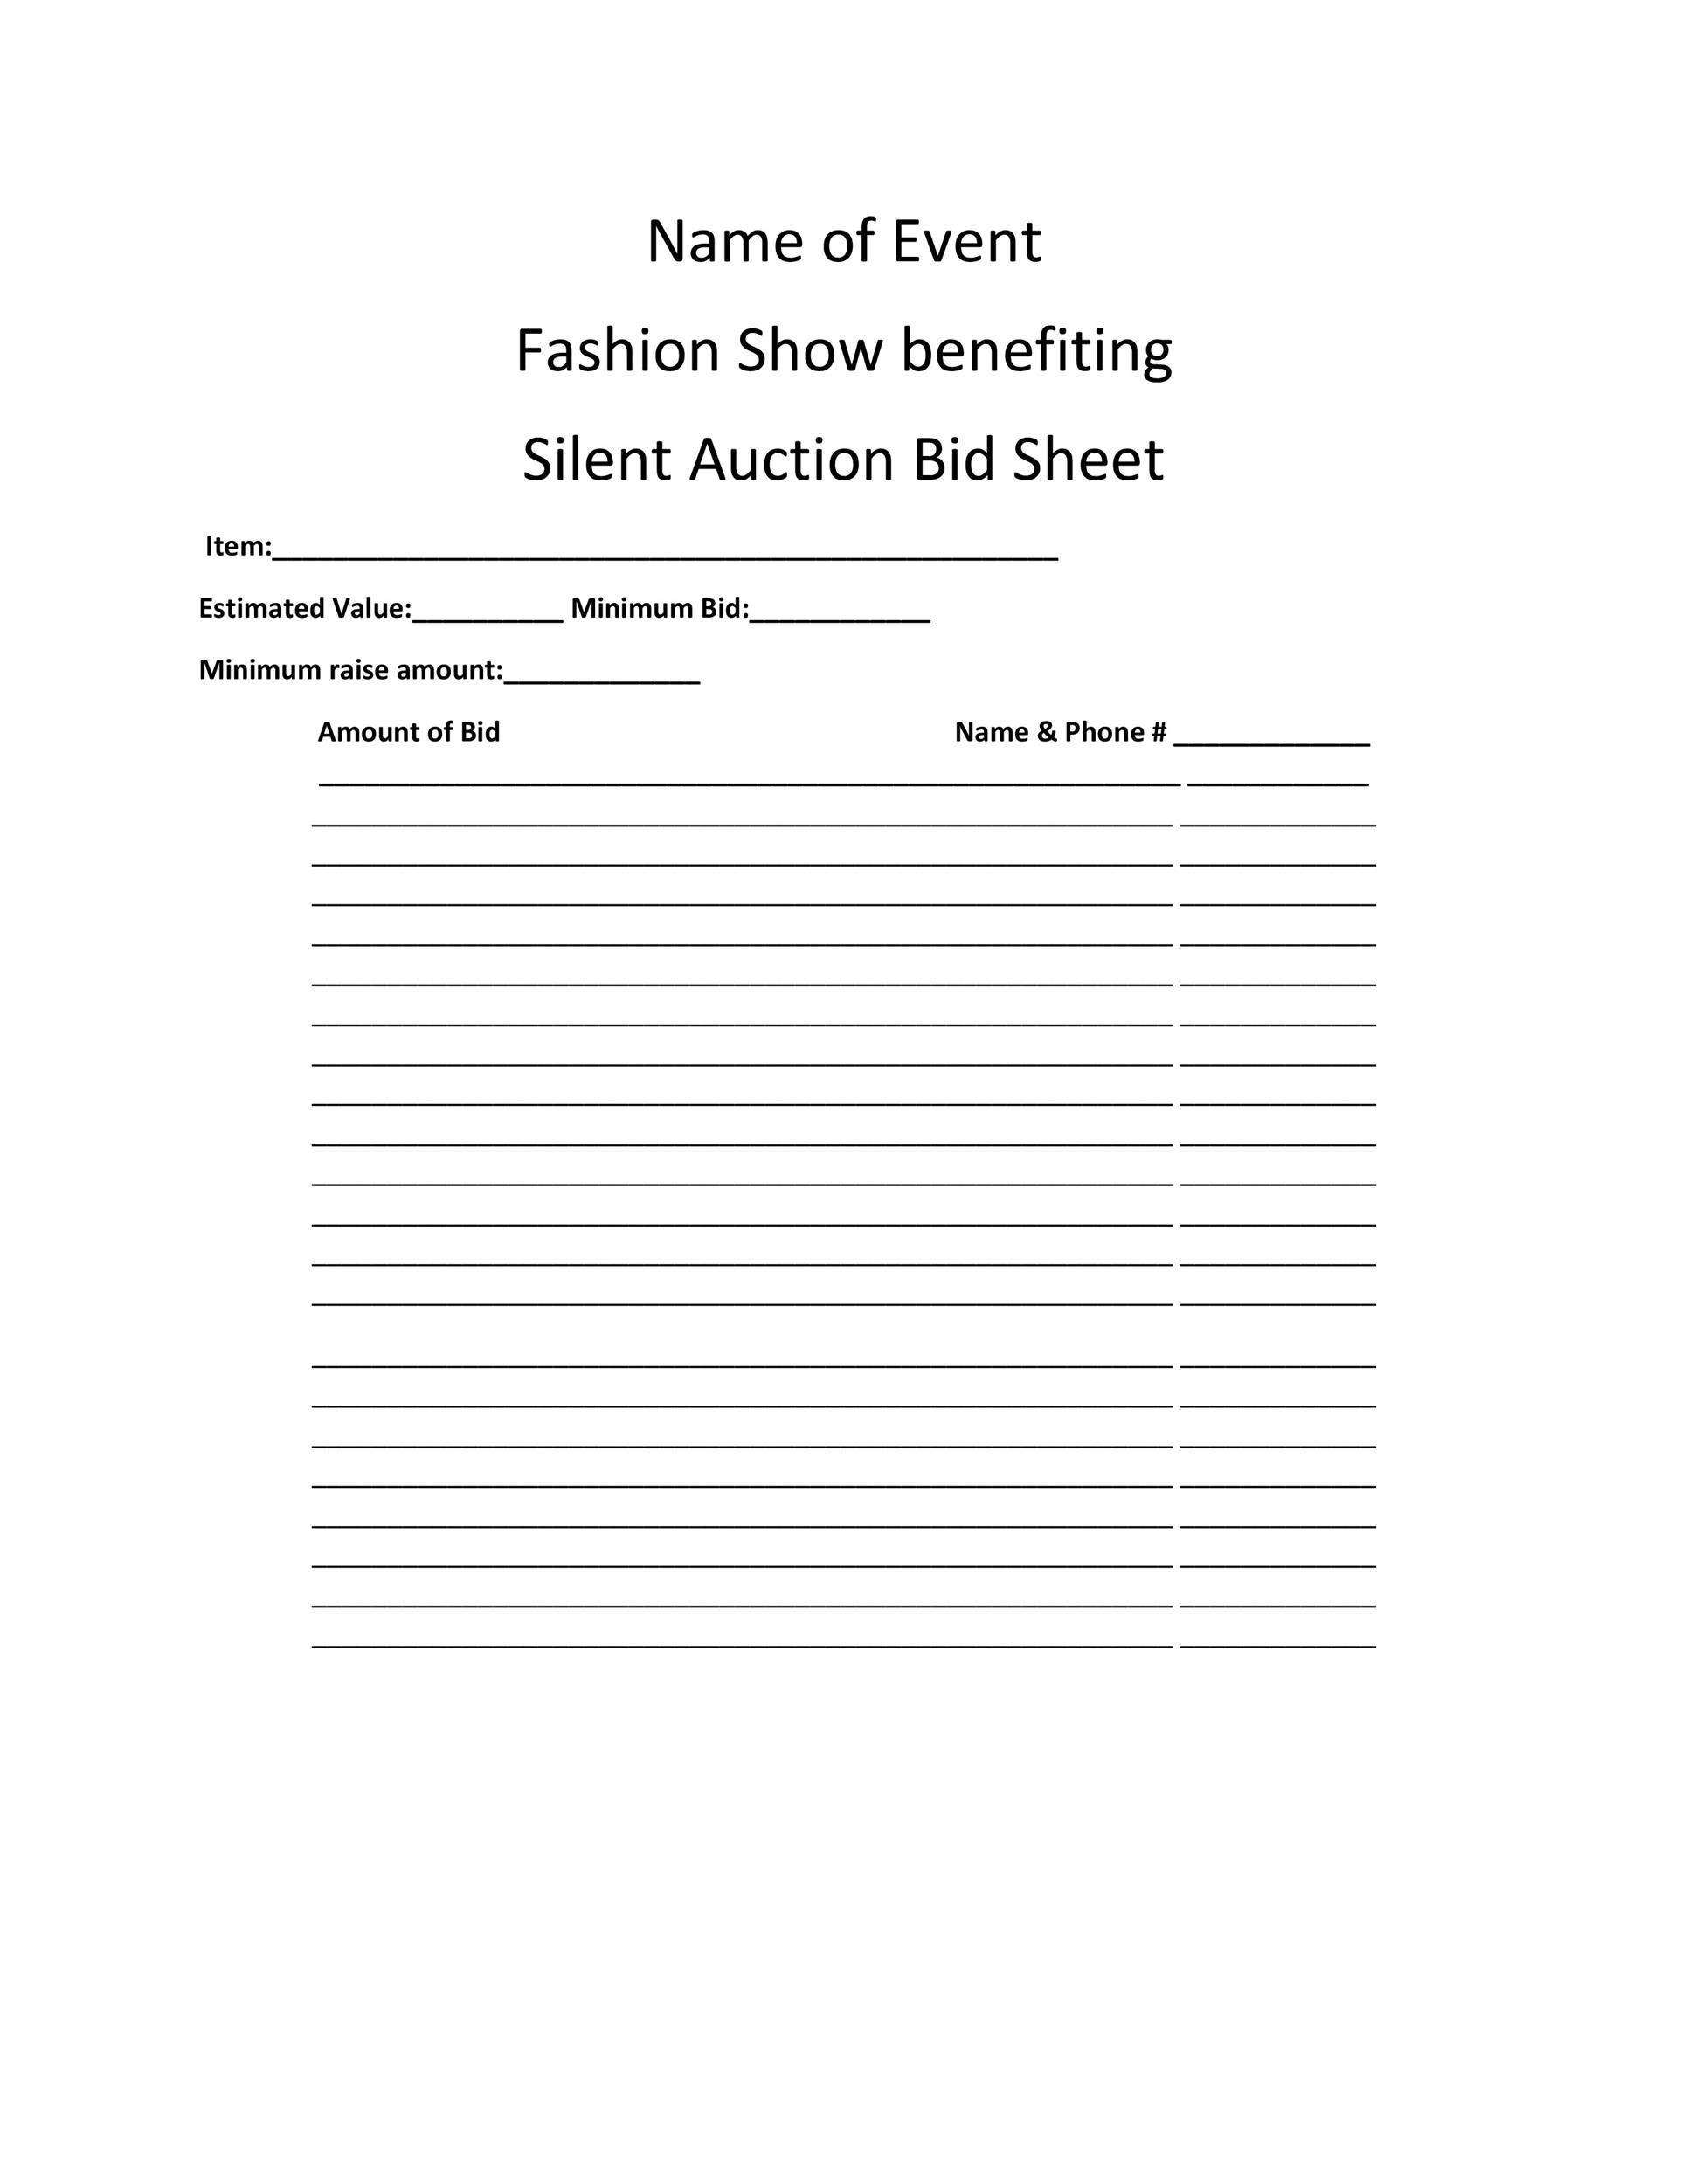 Free Silent Auction Bid Sheet 31